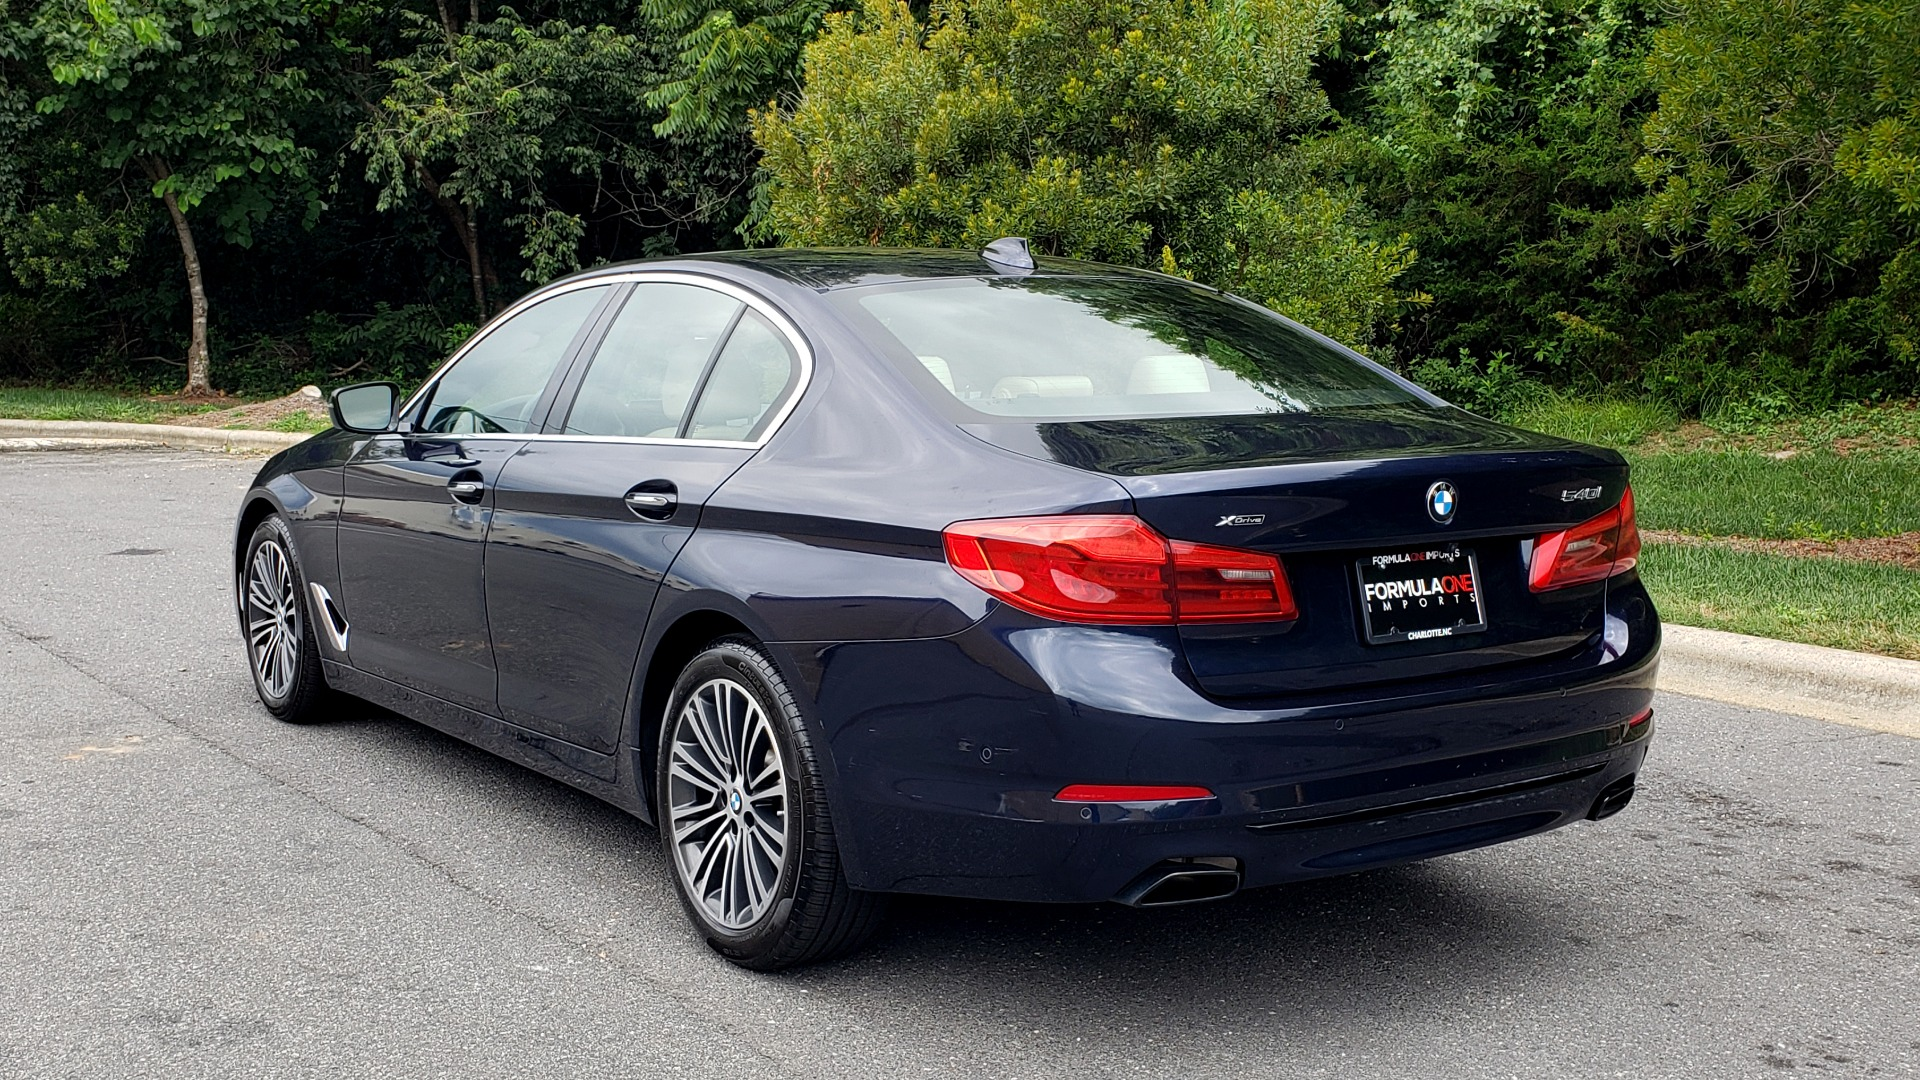 Used 2017 BMW 5 SERIES 540I XDRIVE PREMIUM / NAV / HUD / SUNROOF / REARVIEW for sale $36,595 at Formula Imports in Charlotte NC 28227 3